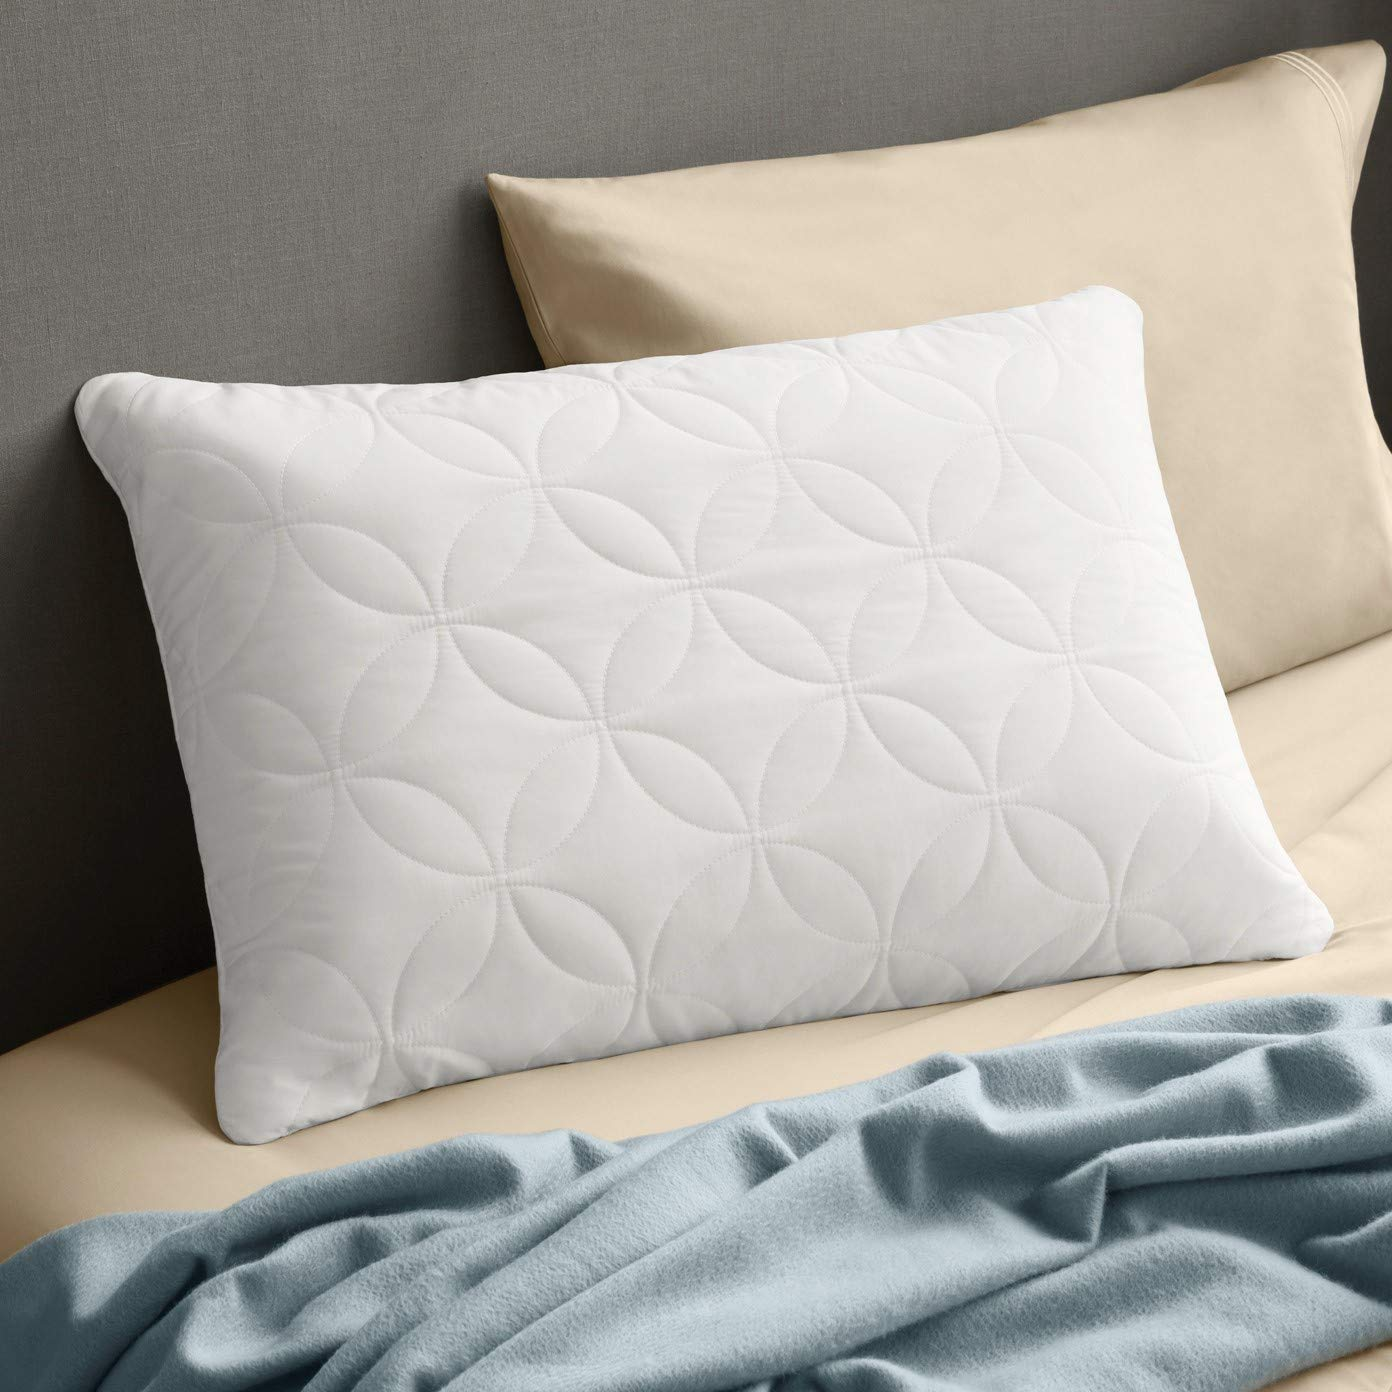 Tempur-Pedic Cloud Conforming Queen Size Pillow, Soft Support, Washable Cover, Assembled in The USA, 5 YR Warranty, White